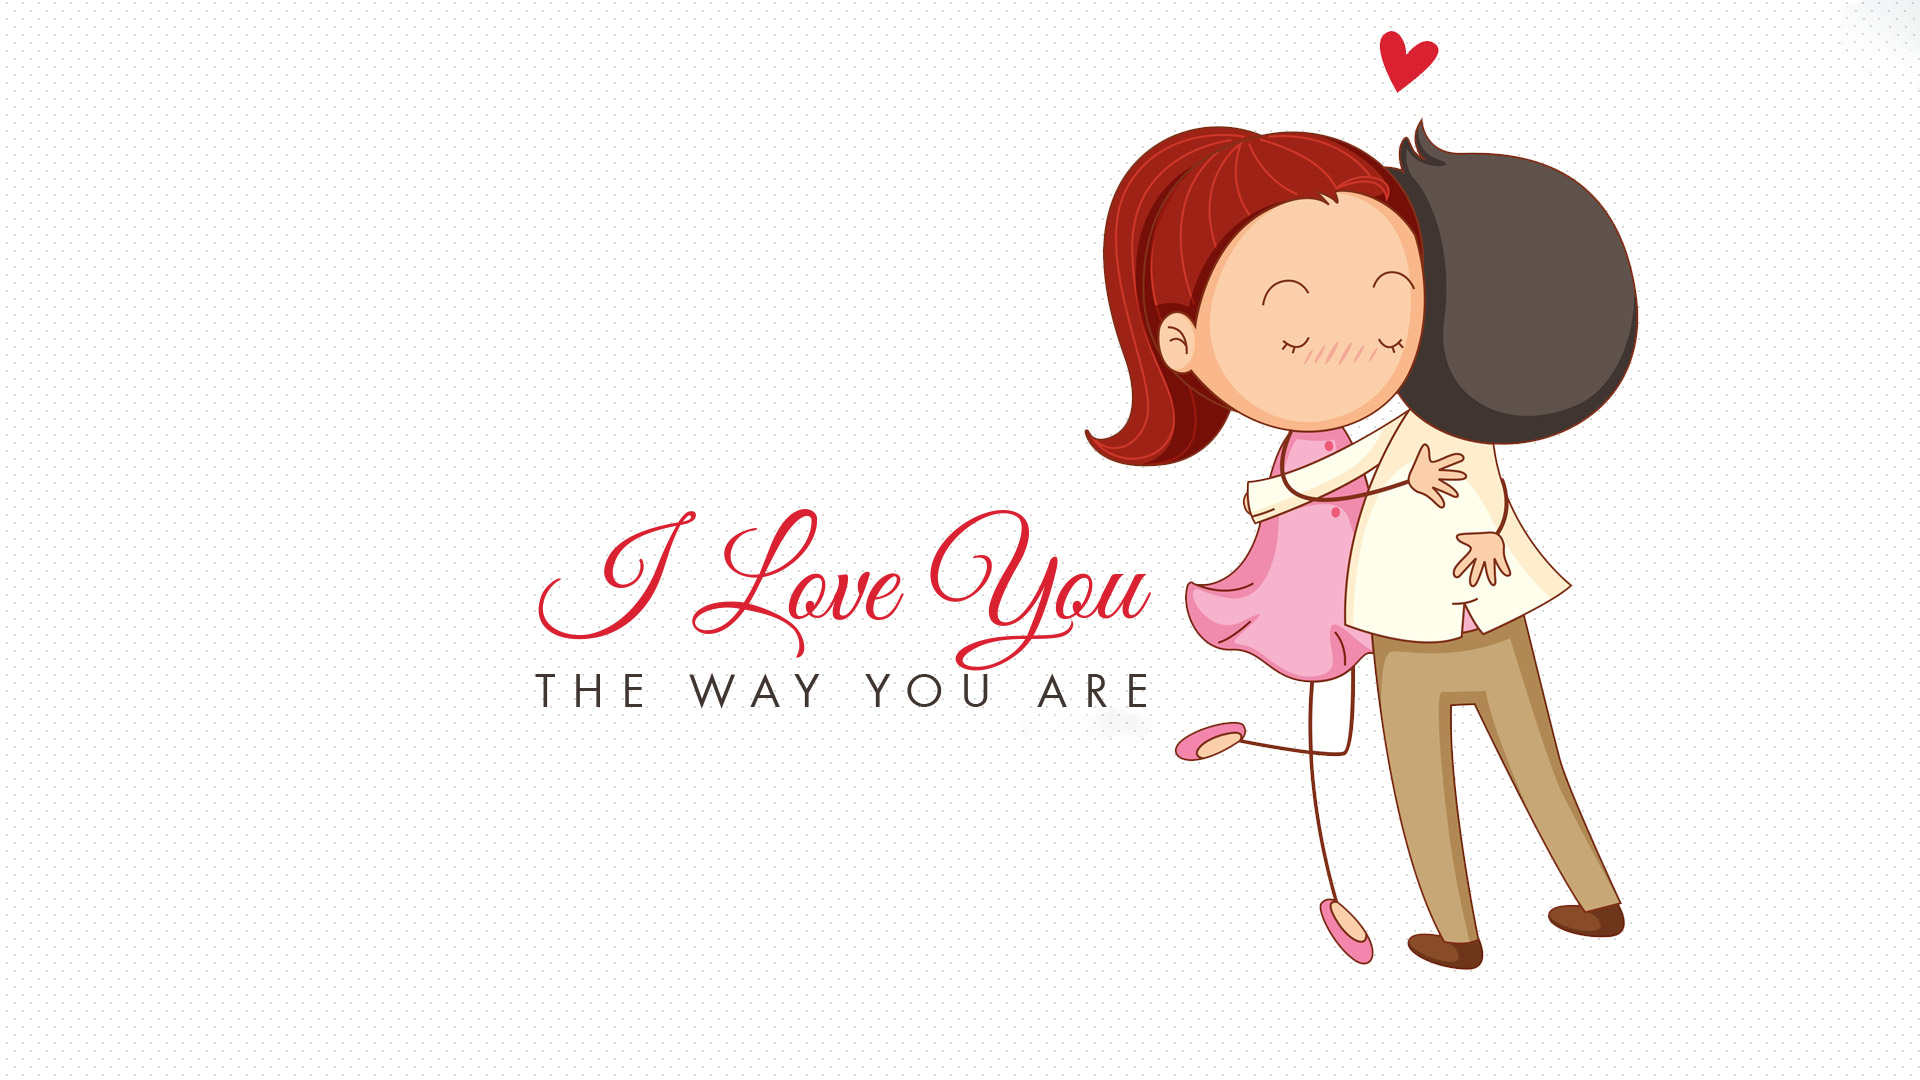 Love couple Wallpaper Hd cartoon : Top 150+ Beautiful cute Romantic Love couple HD Wallpaper